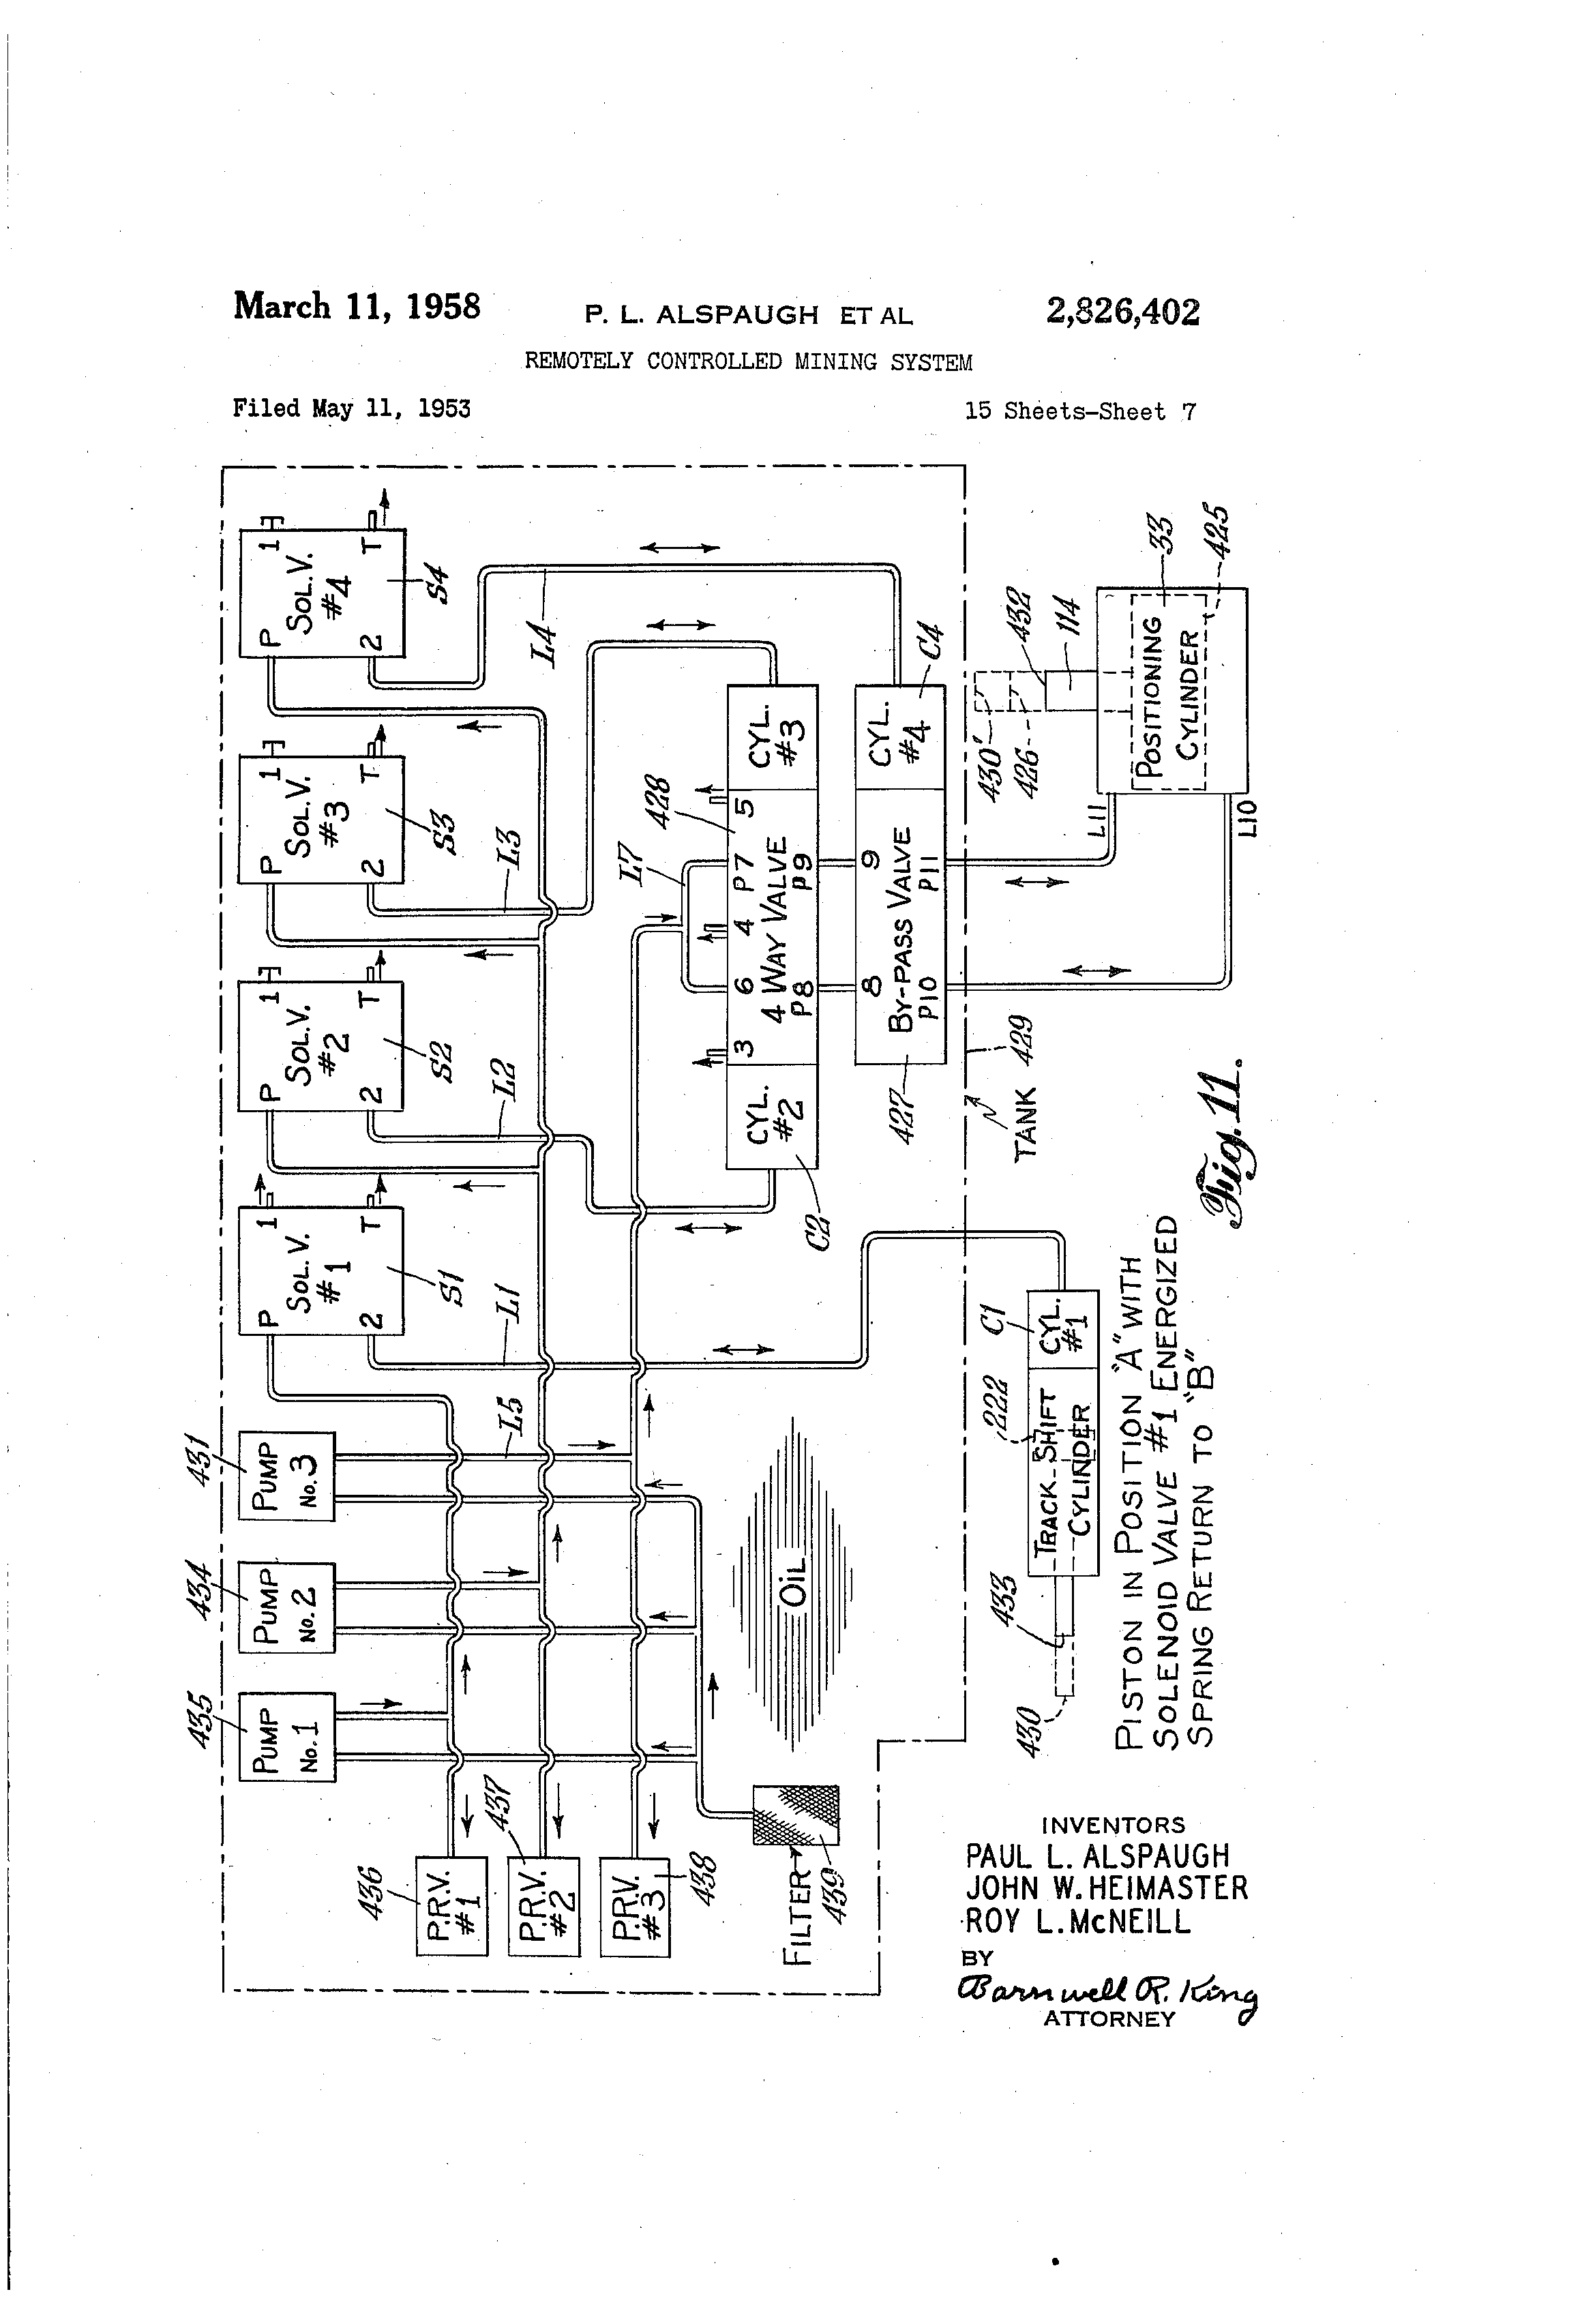 [ZTBE_9966]  Budgit Crane Hoist Wiring Diagram. budgit electric hoist wiring diagrams  hoists direct. gallery of budgit hoist wiring diagram 3 phase download.  pnoz x4 wiring diagram gallery wiring diagram sample. budgit hoist wiring | Budgit Hoist Wiring Schematic |  | 2002-acura-tl-radio.info